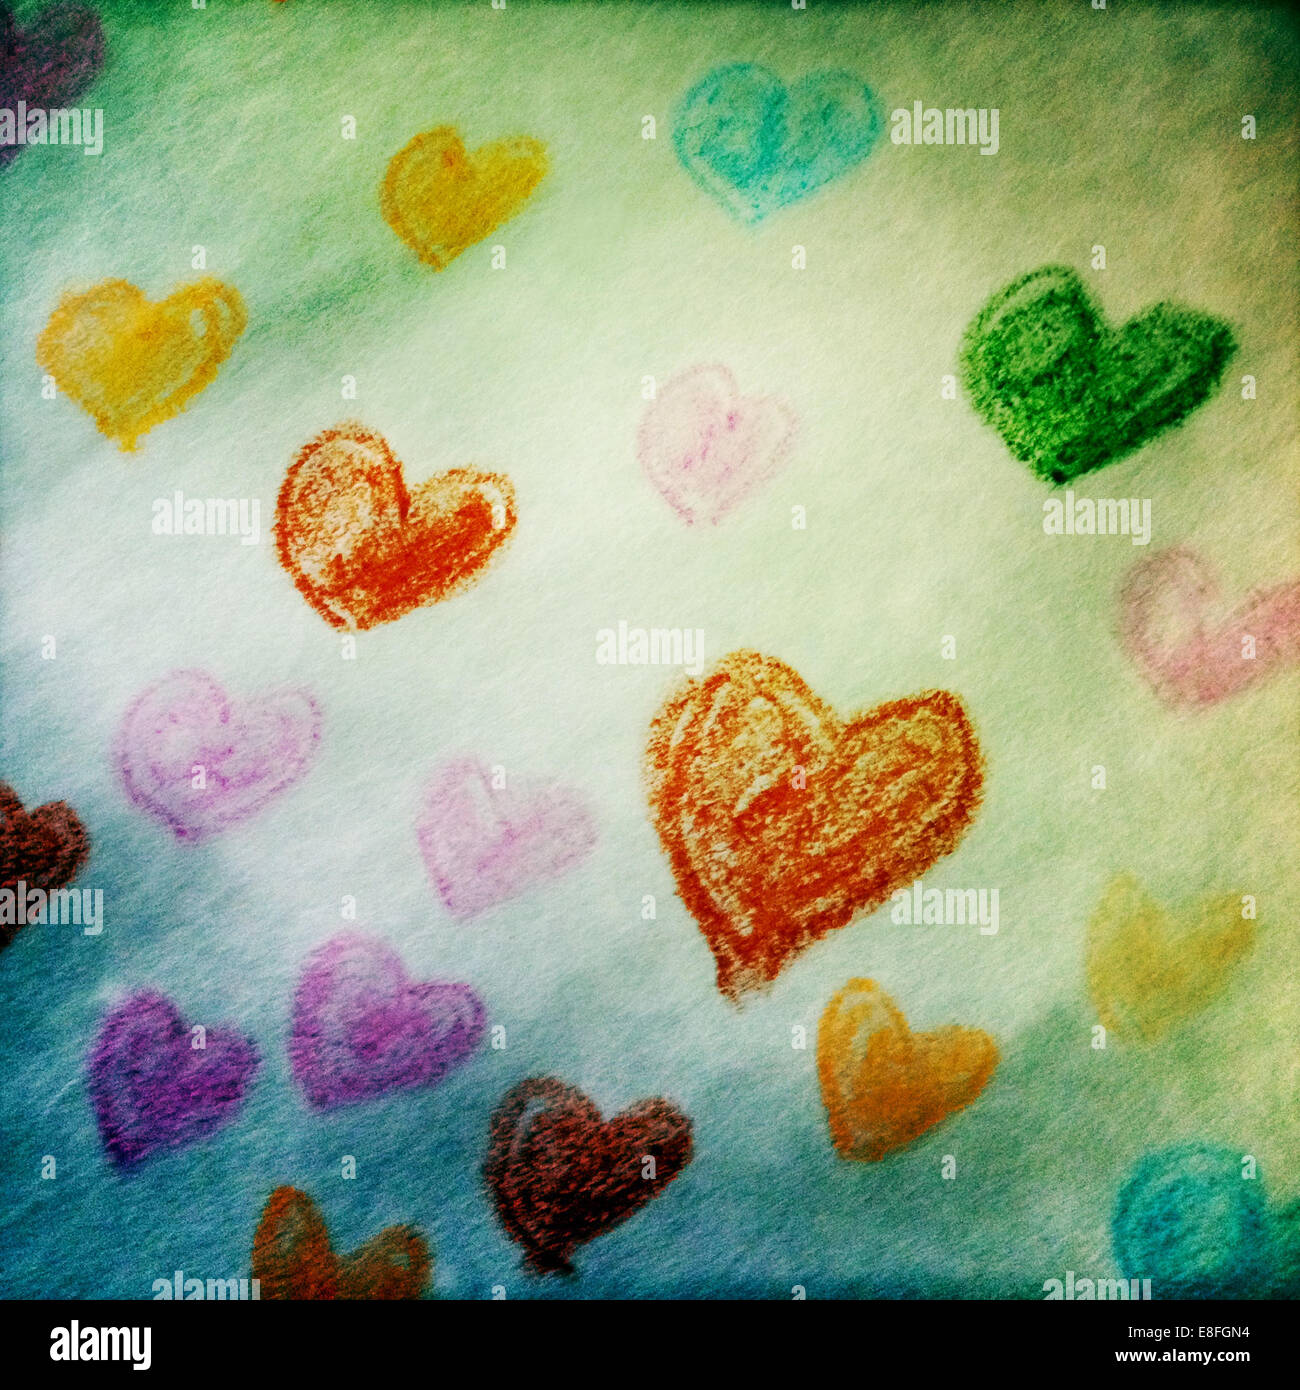 Multi-Colored hearts drawn on paper - Stock Image